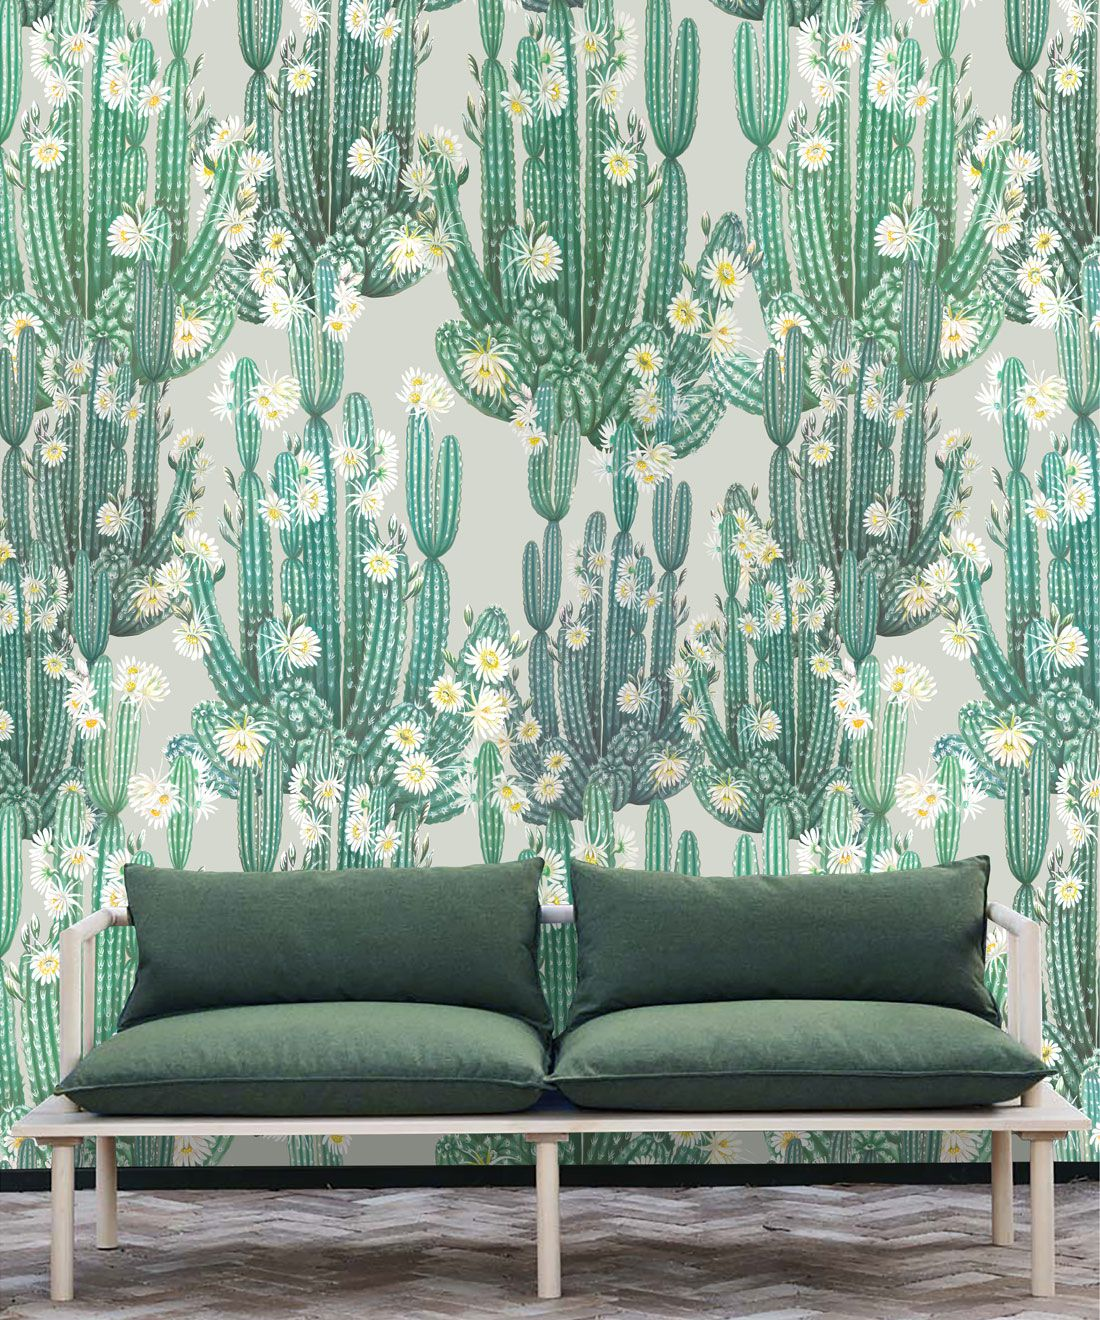 San Pedro Wallpaper Green • Cactus Wallpaper • Succulents Wallpaper • Desert Wallpaper Insitu behind sofa with green cushions